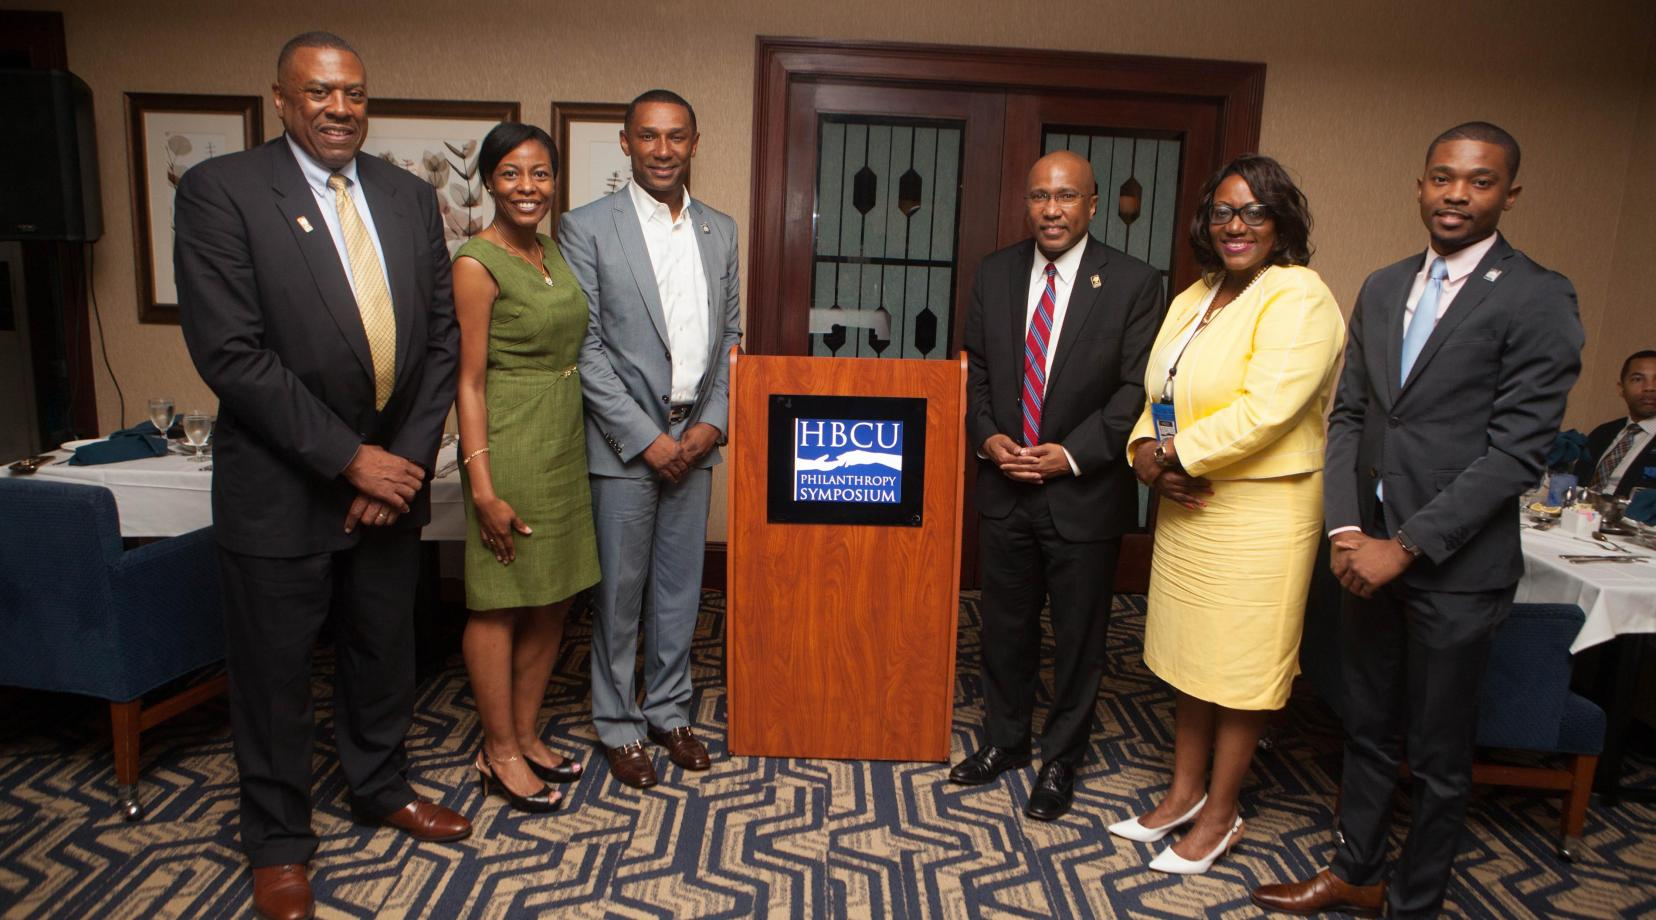 <p>(L-r) DSU alumnus and Board of Trustees member John Ridgeway, Emily Dickens TMCF Sr. VP, Johnny C. Taylor, TMCF president and CEO, DSU President Dr. Harry L. Williams, DSU Institutional Advancement VP Dr. Vita Pickrum, and Tony Hunter, TMCF assistant to the president. (TMCF -- Thurgood Marshall College Fund).</p>